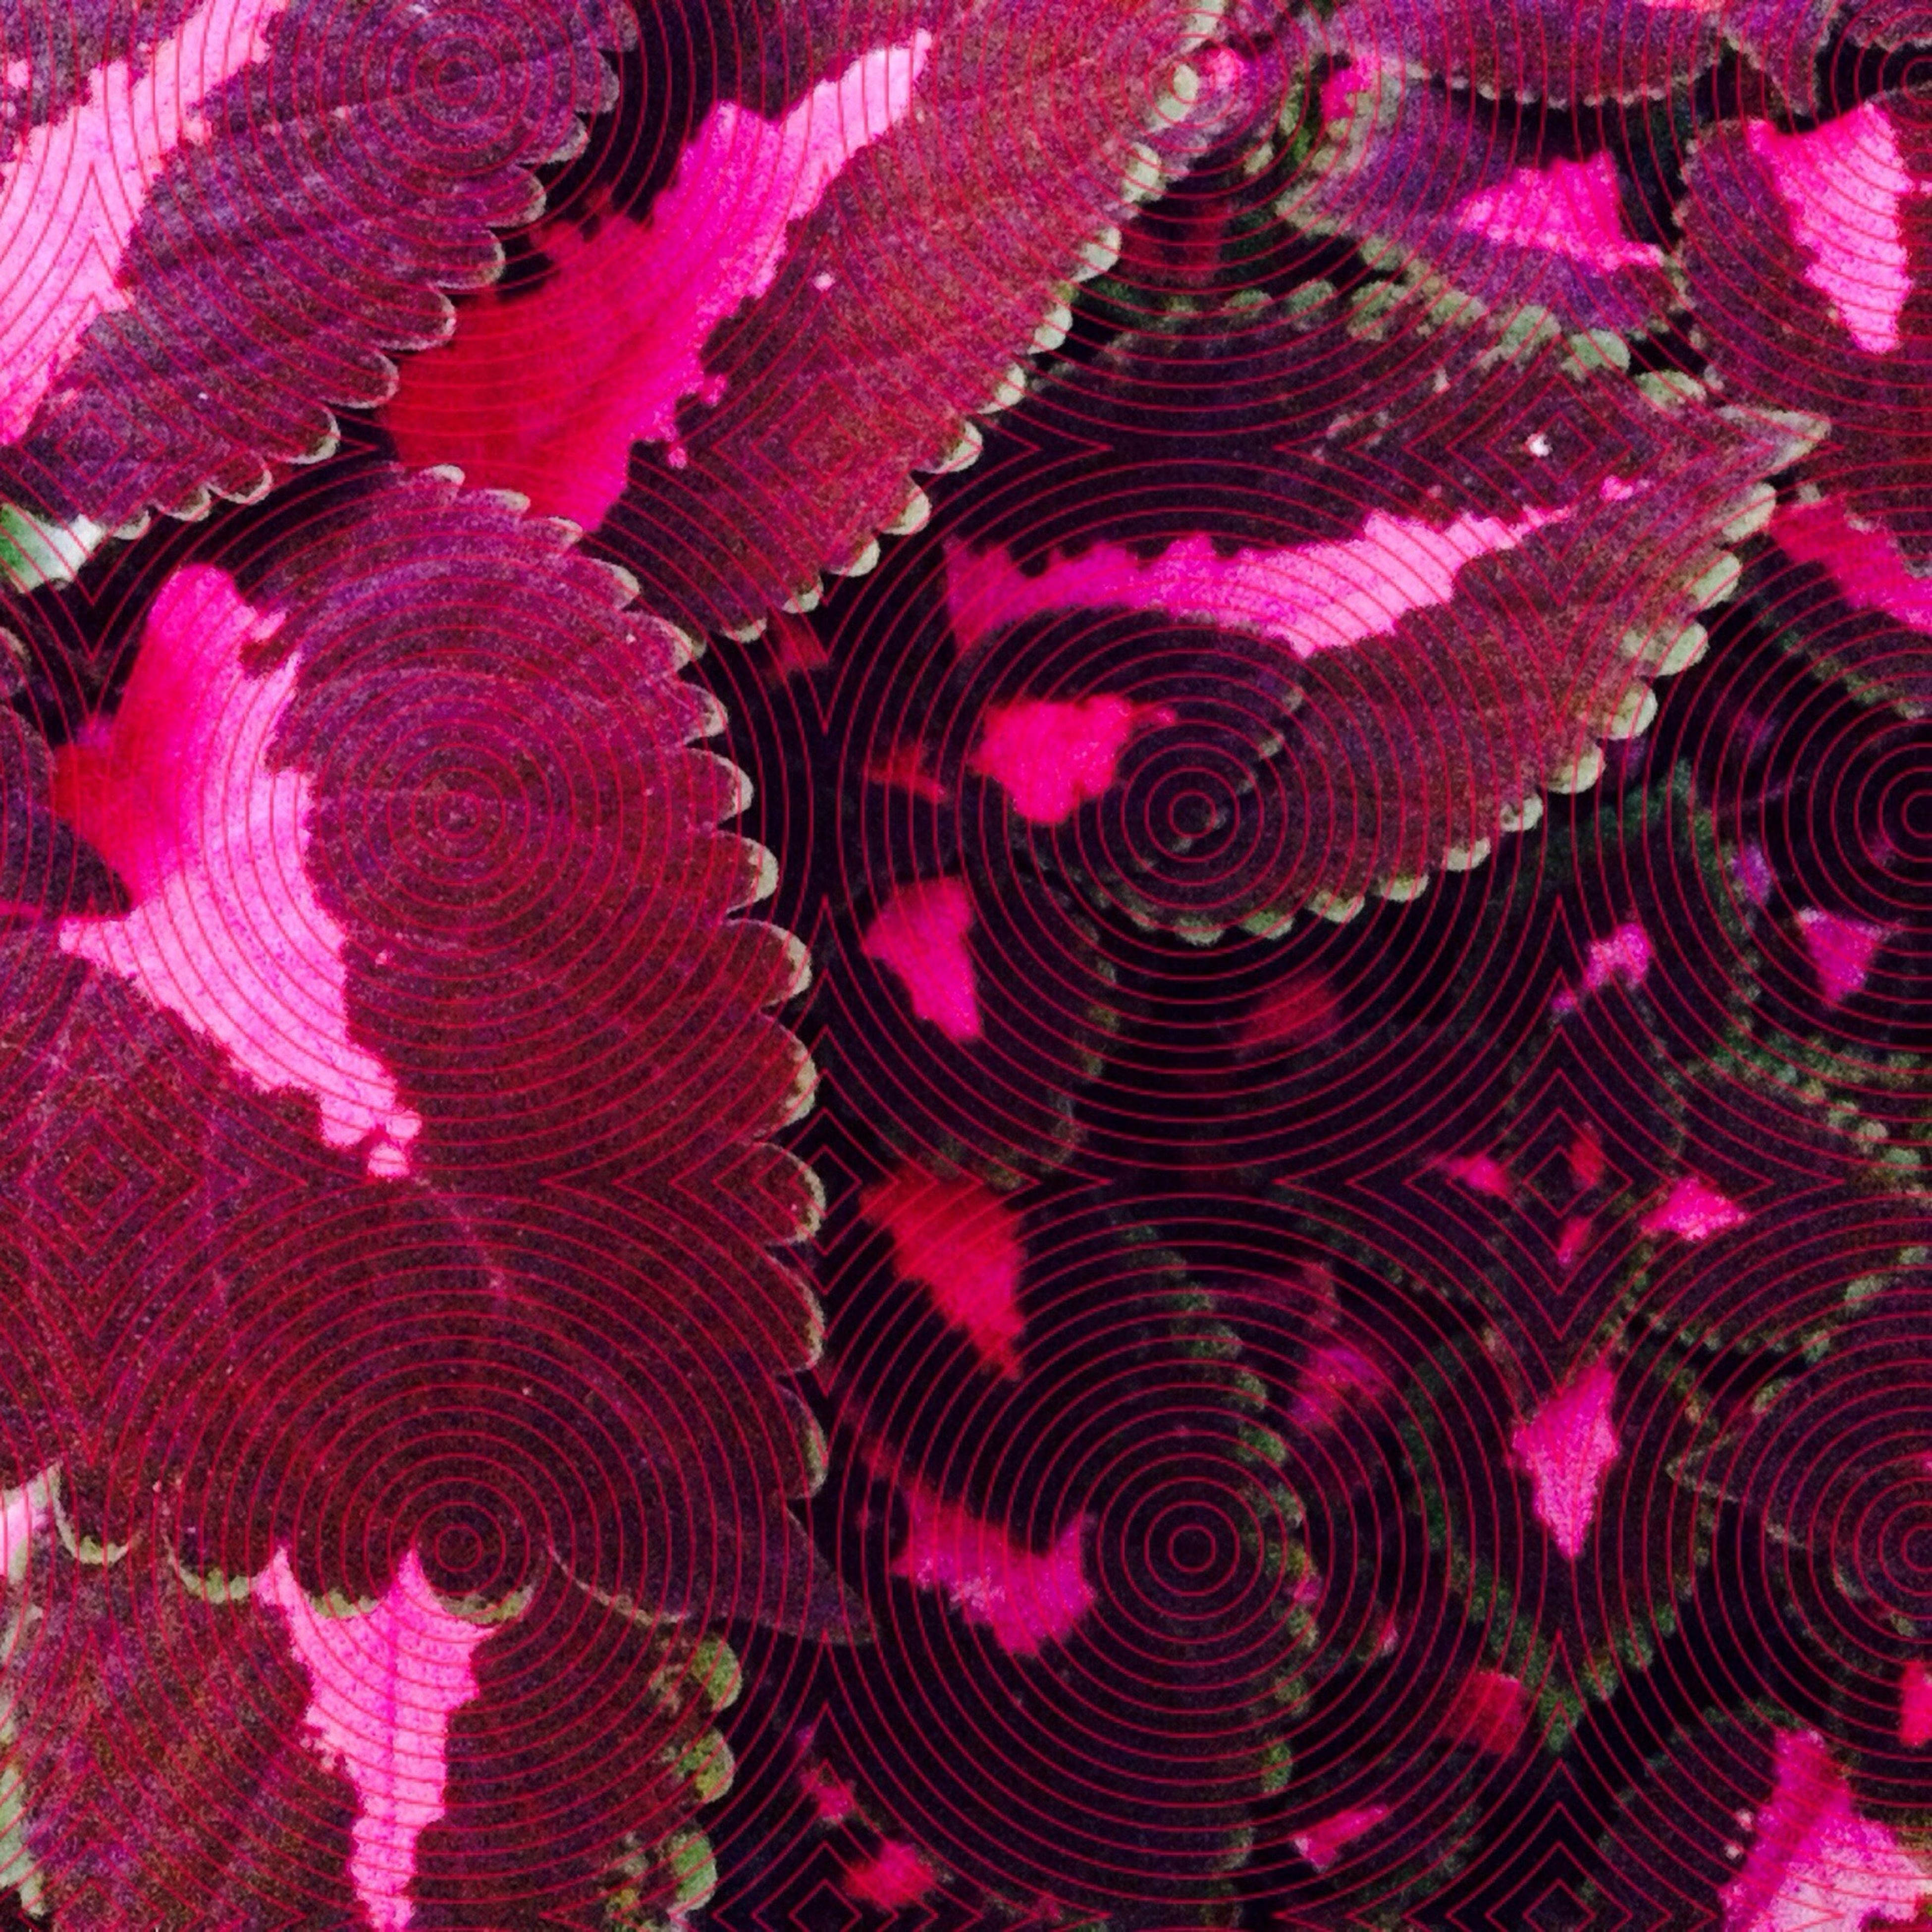 full frame, backgrounds, pattern, pink color, textured, indoors, design, close-up, textile, fabric, high angle view, natural pattern, red, floral pattern, multi colored, detail, no people, purple, still life, art and craft